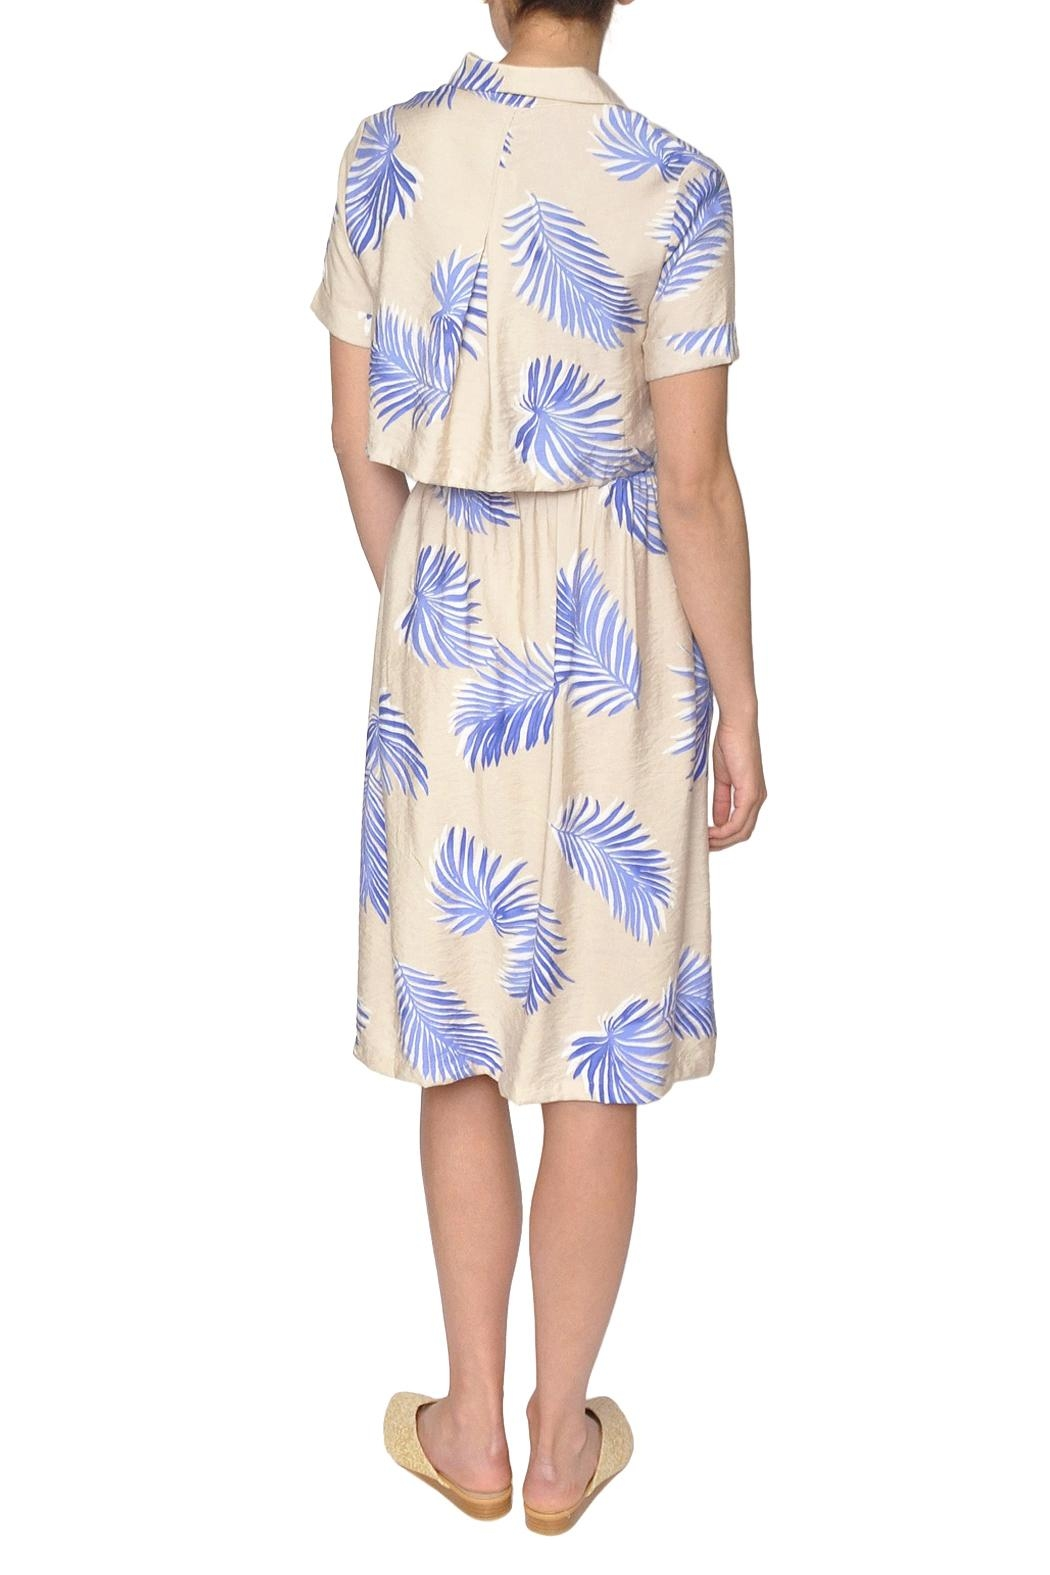 FRNCH Palm Print Dress - Side Cropped Image